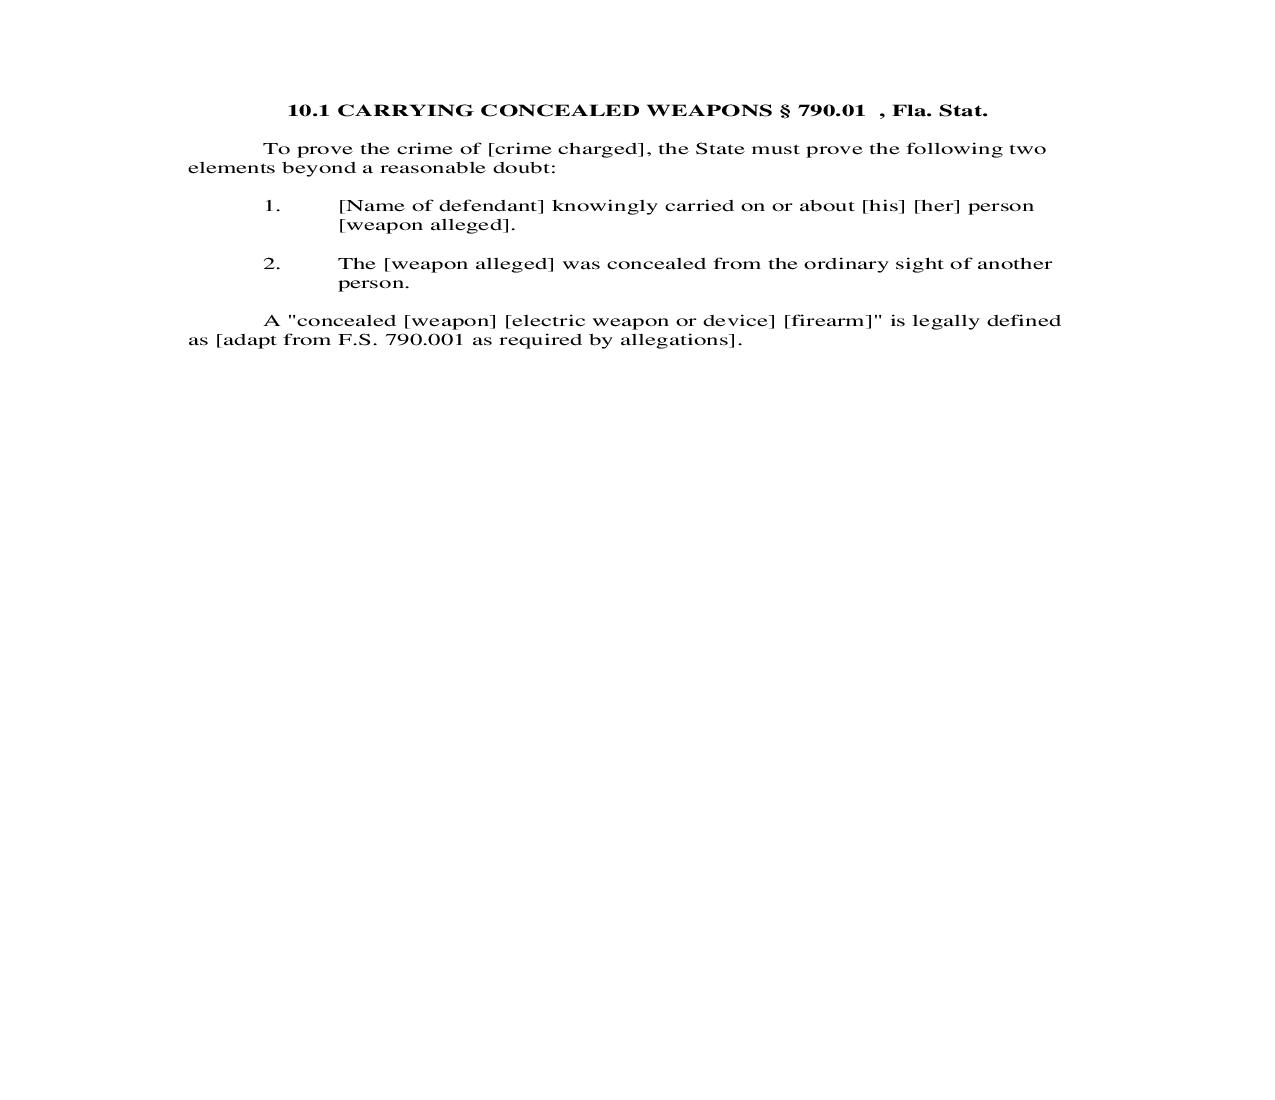 10.1. Carrying Concealed Weapons   Pdf Doc Docx   Florida_JI